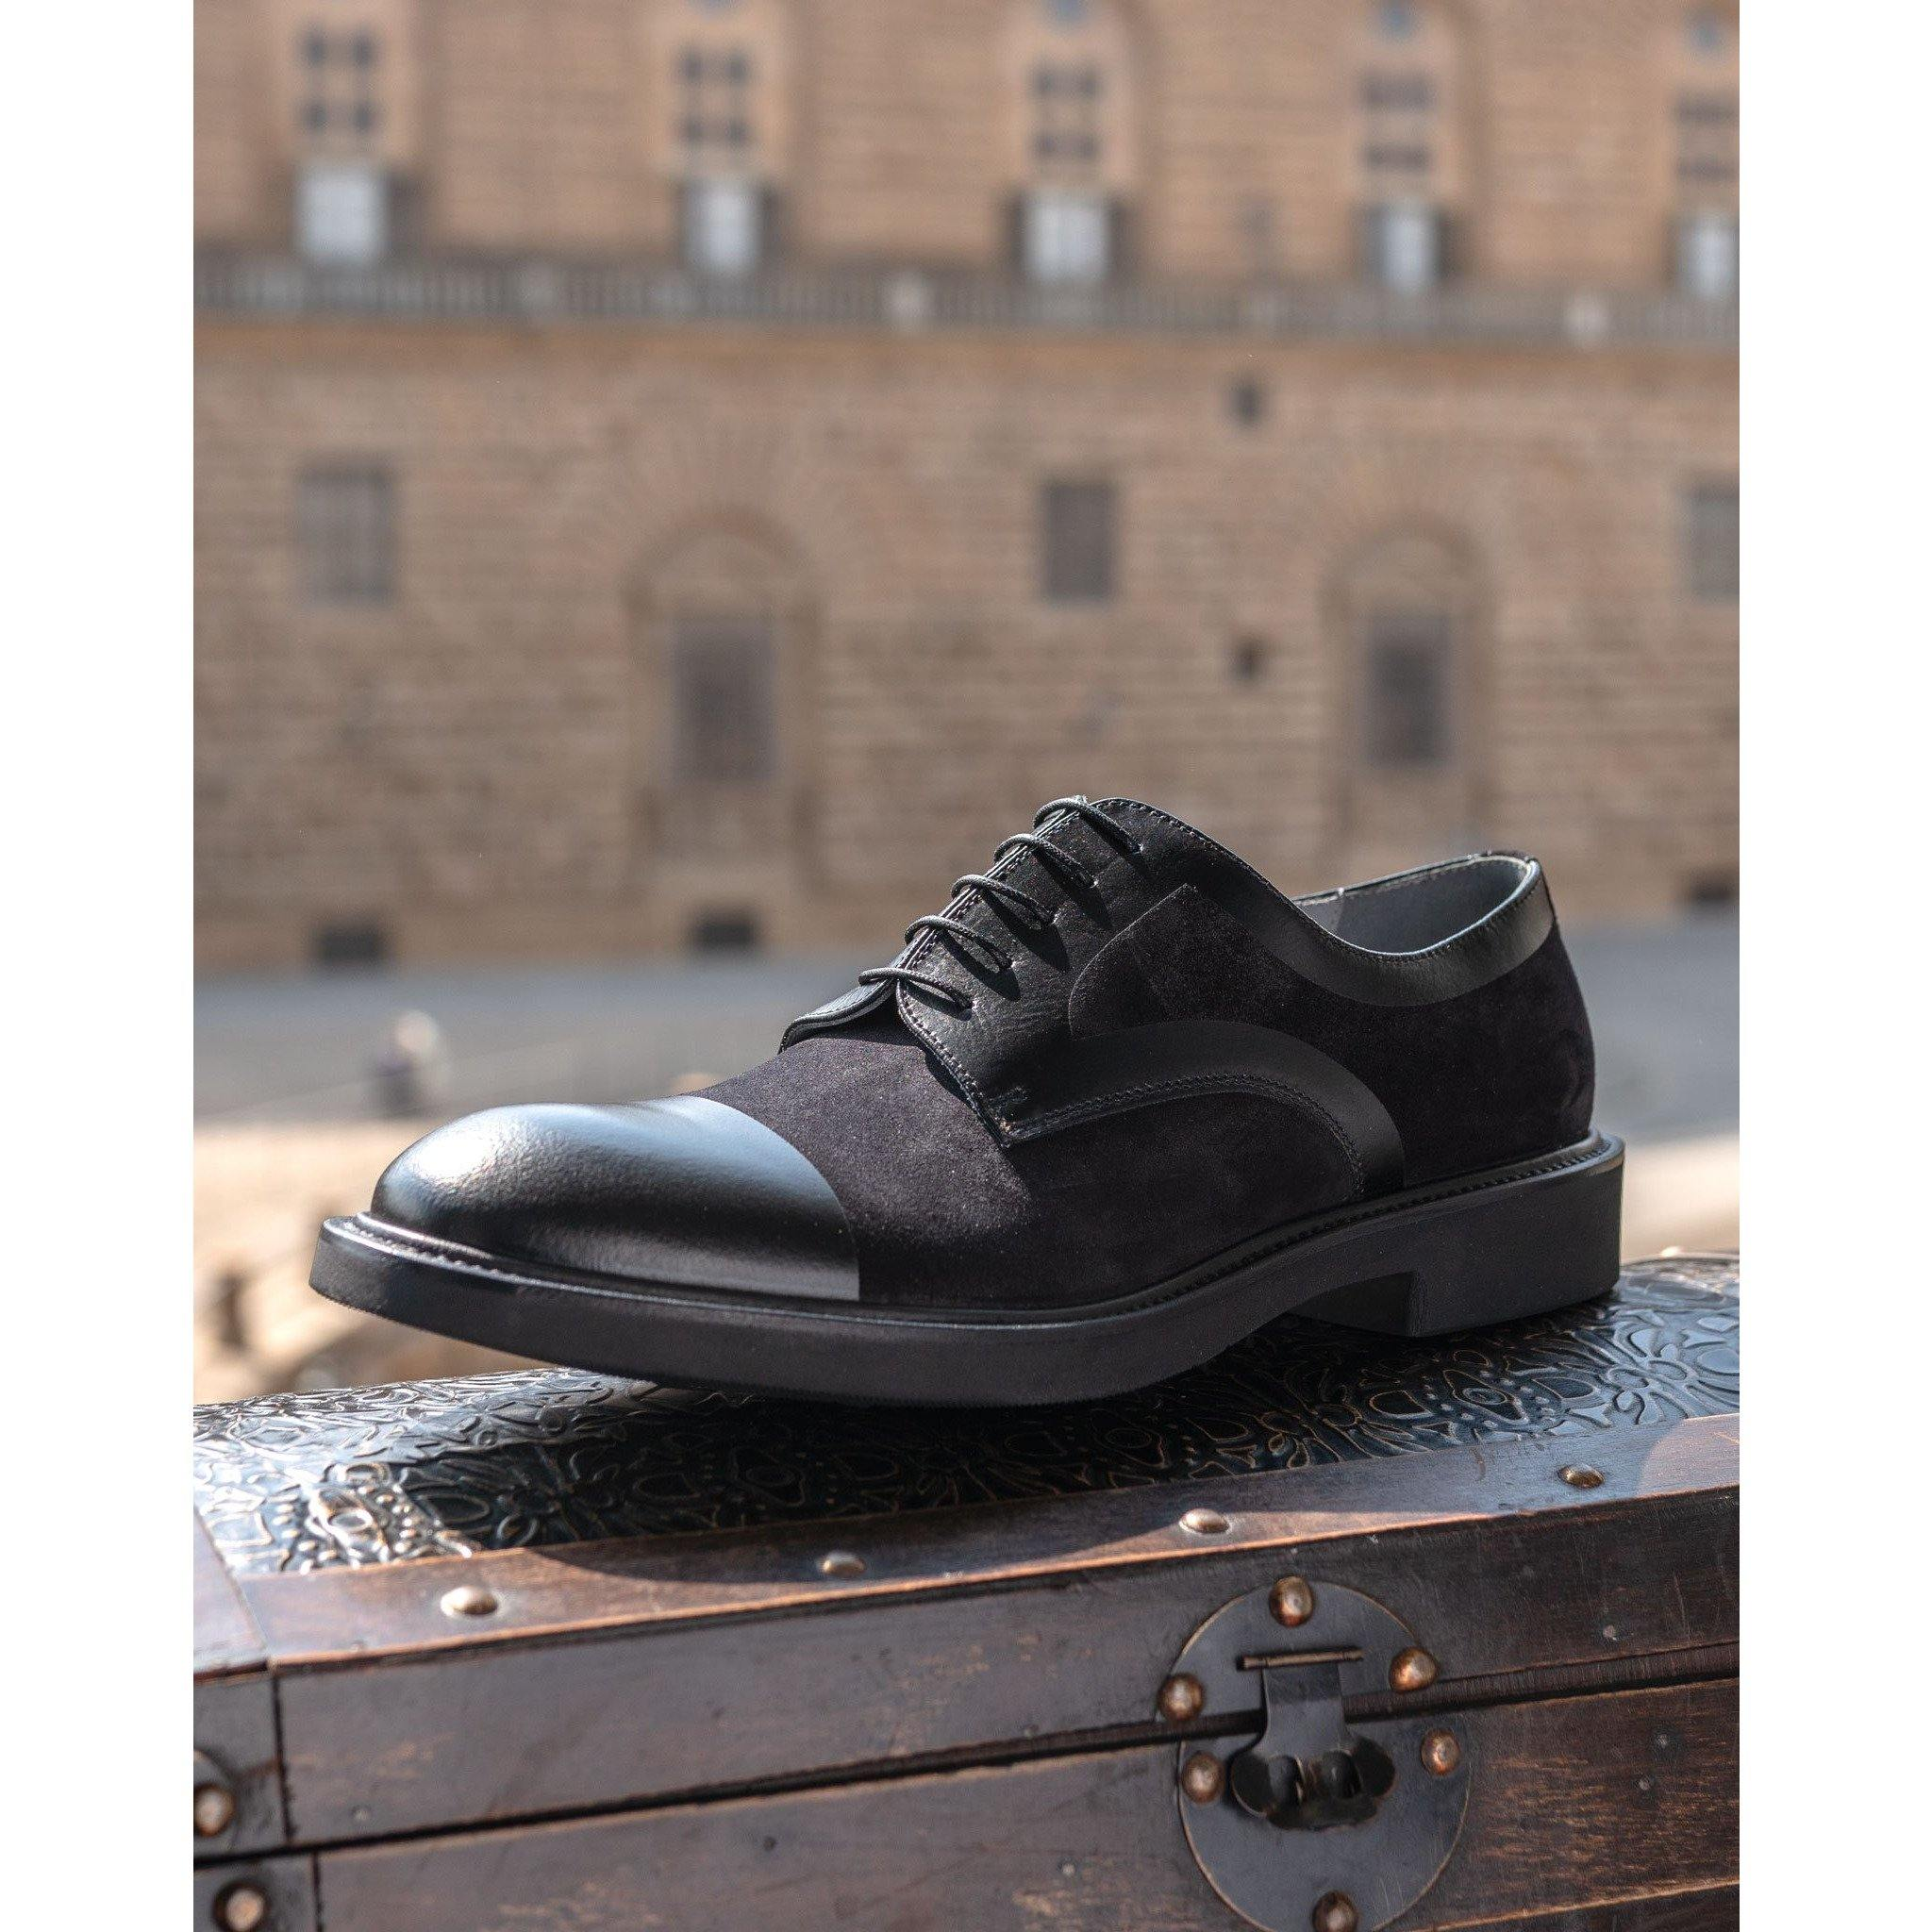 LAN9020 F340 Lace Up Men Shoes - New Fall Winter 2019-2020 Collection